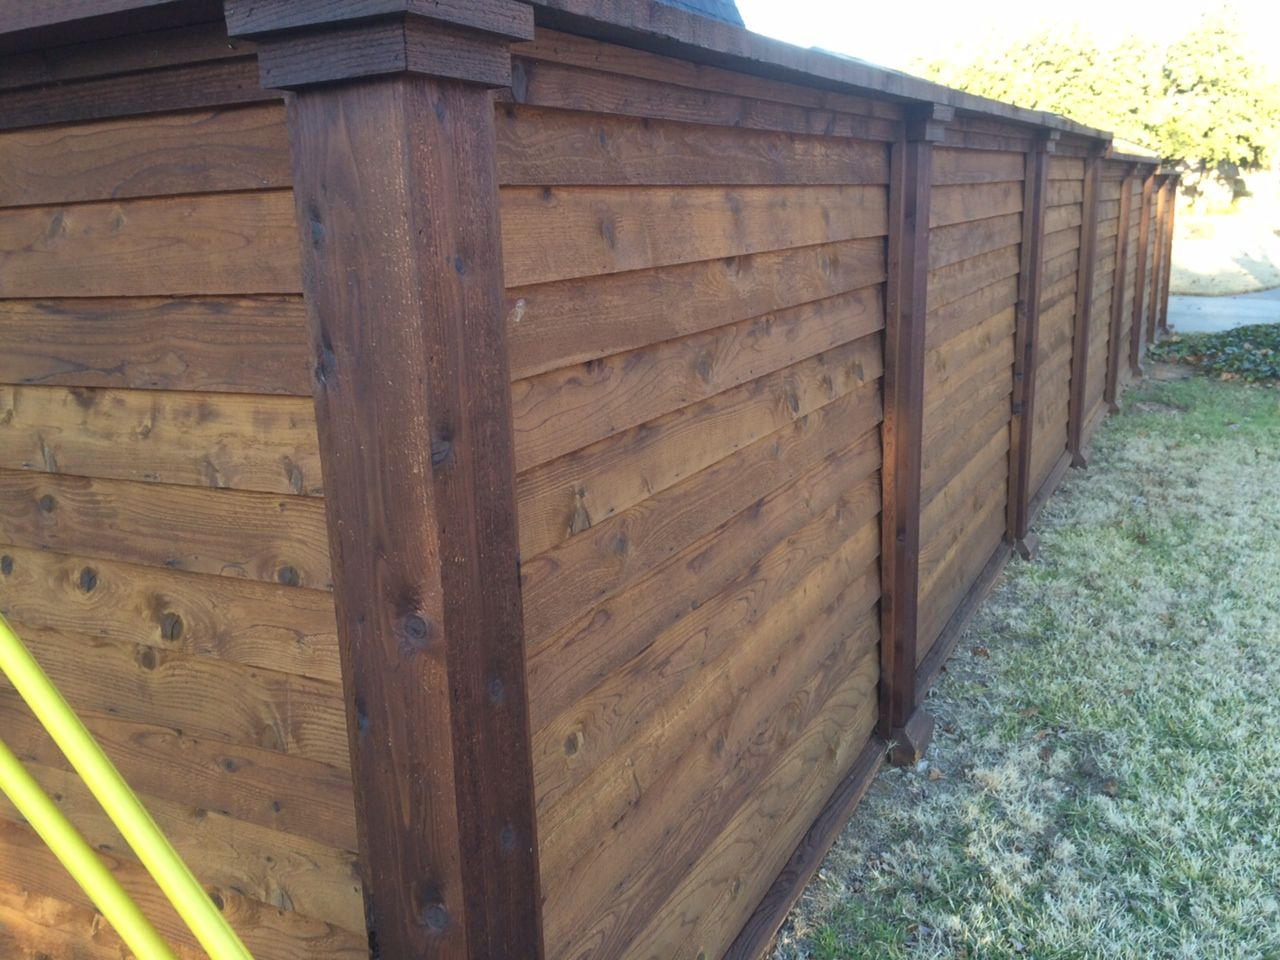 Design installation of outdoor projects patios structures horizontal cedar fence w boards lapped baanklon Images